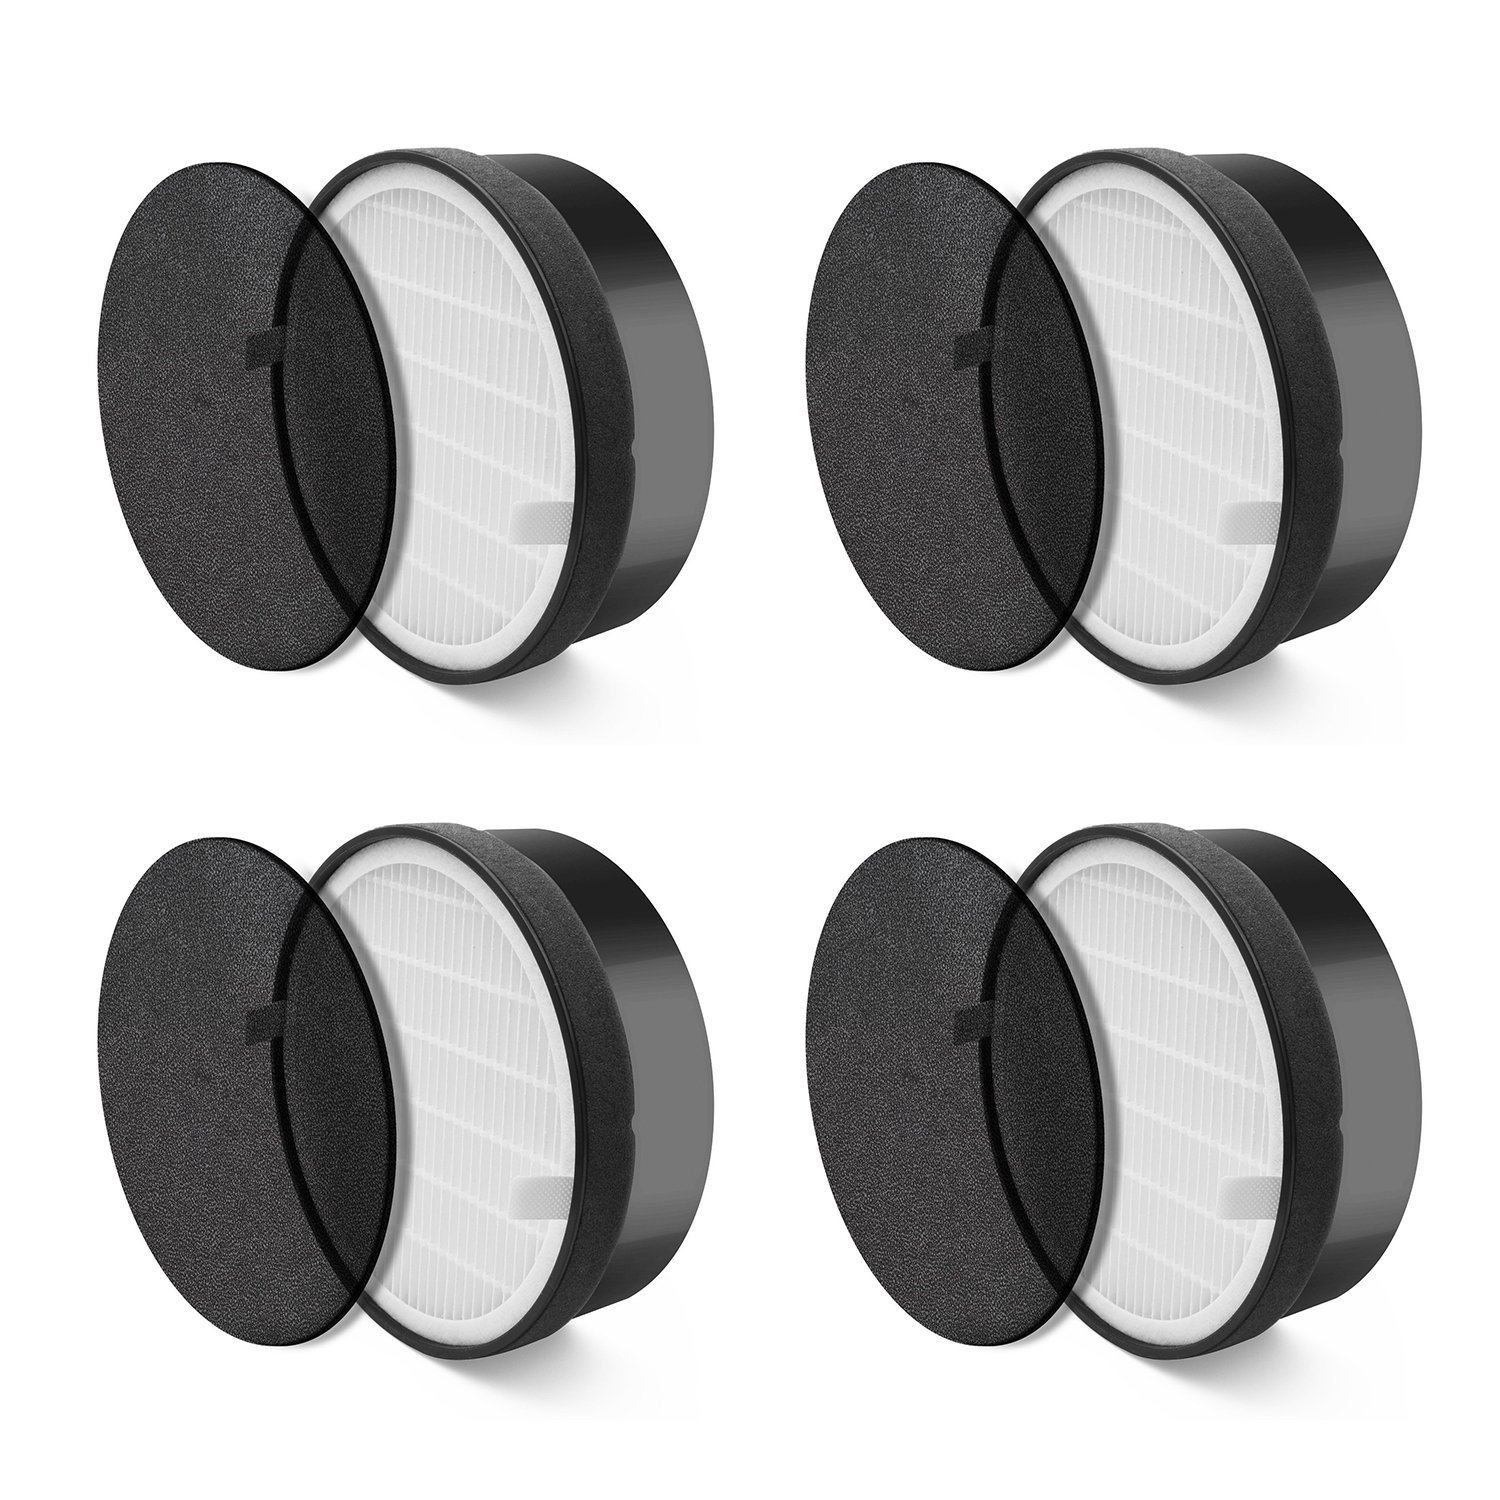 LEVOIT Air Purifier LV-H132 Replacement Filter (4 Pack)